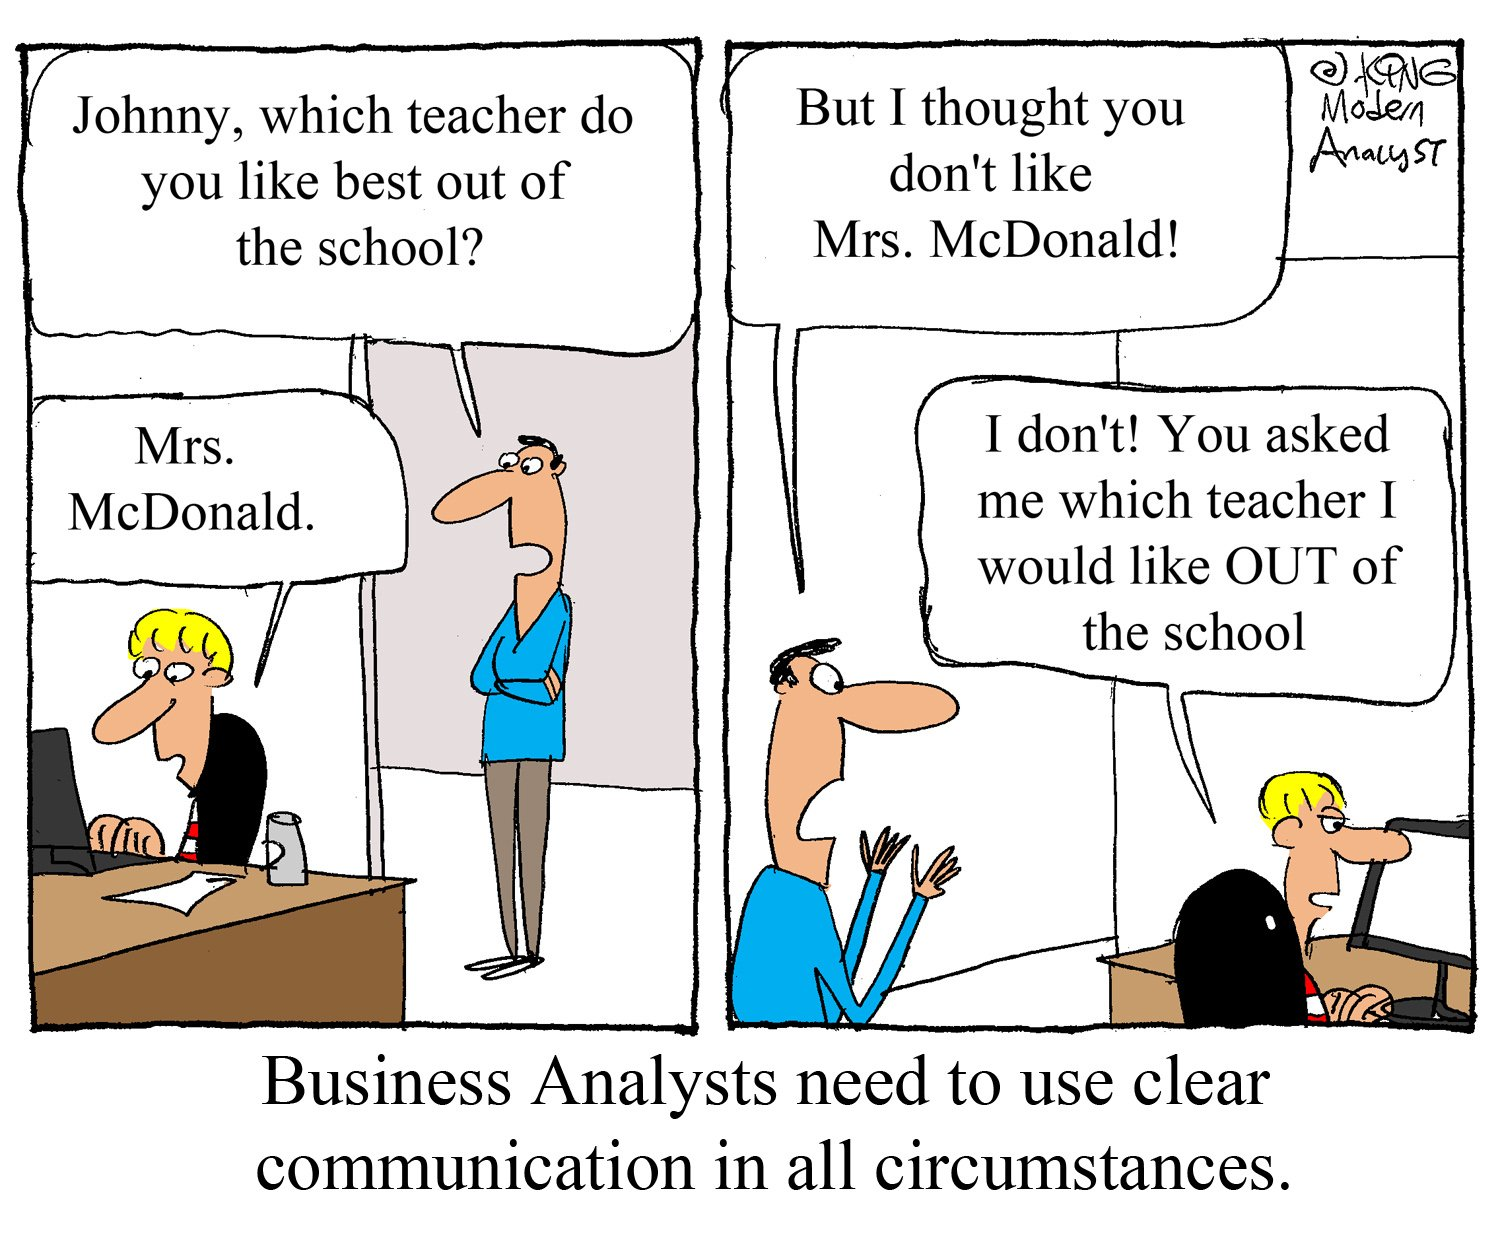 humor  business analysts need to use clear communication